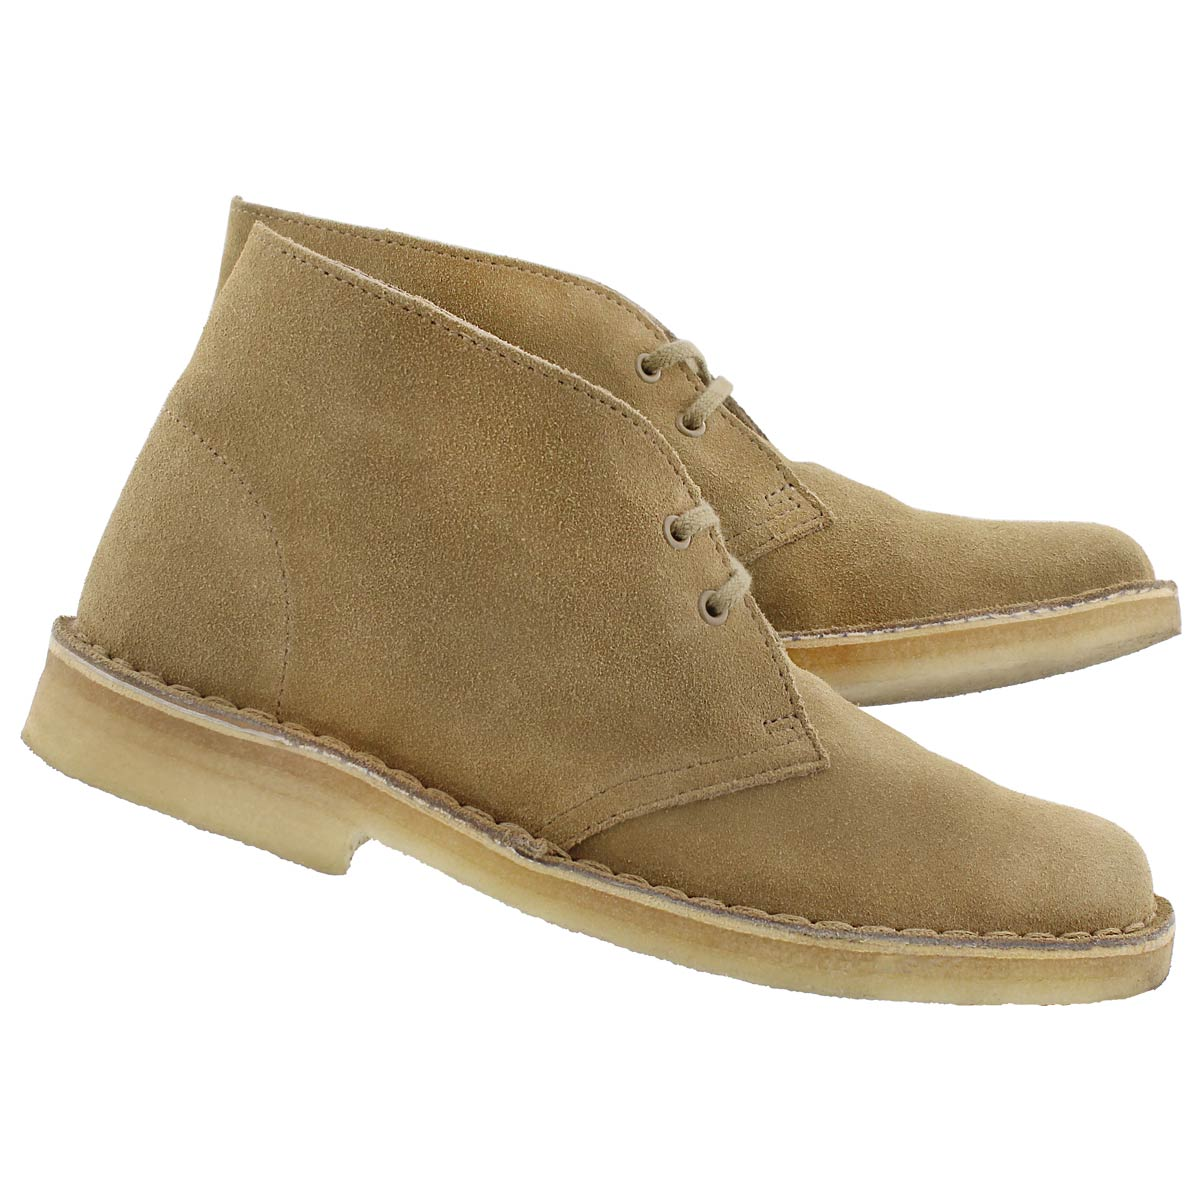 Lds Originals Desert Boot oakwood suede